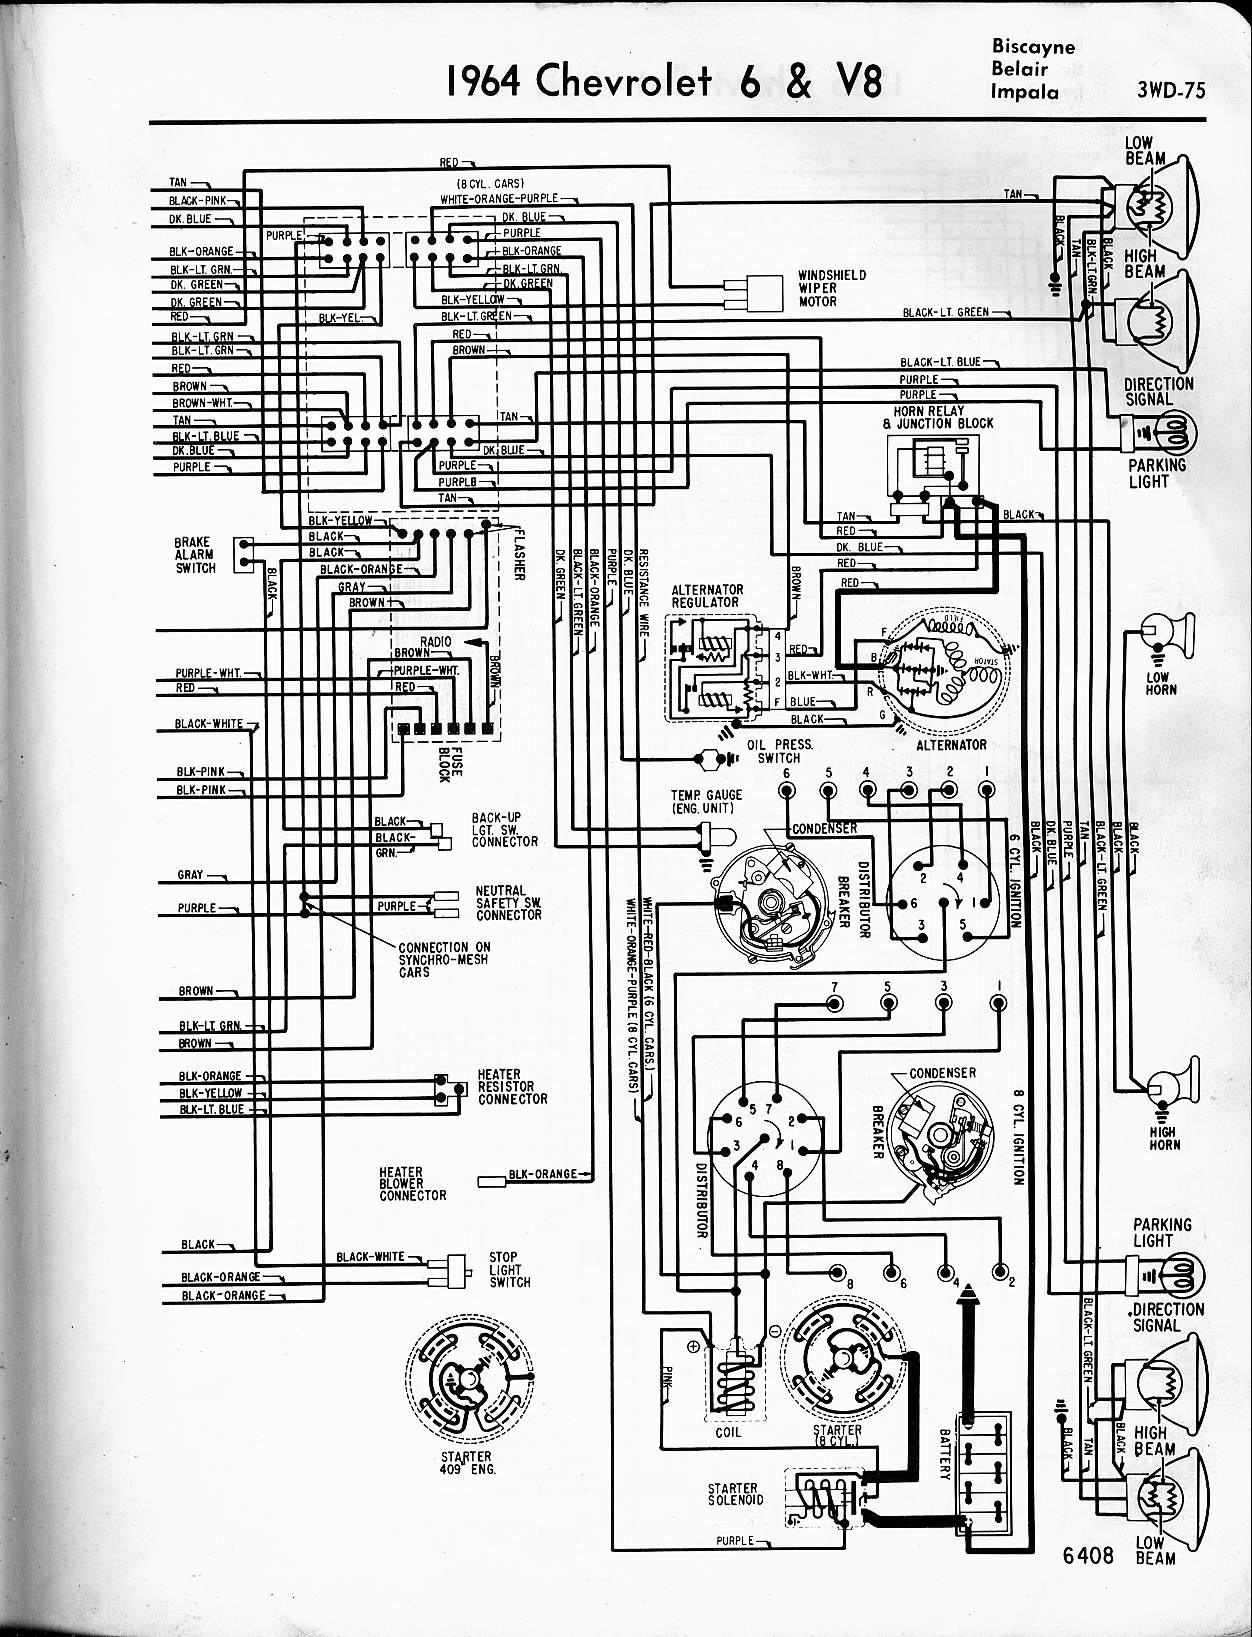 57 65 chevy wiring diagrams 2004 impala heater wiring diagram 1964 6 & v8  biscayne,